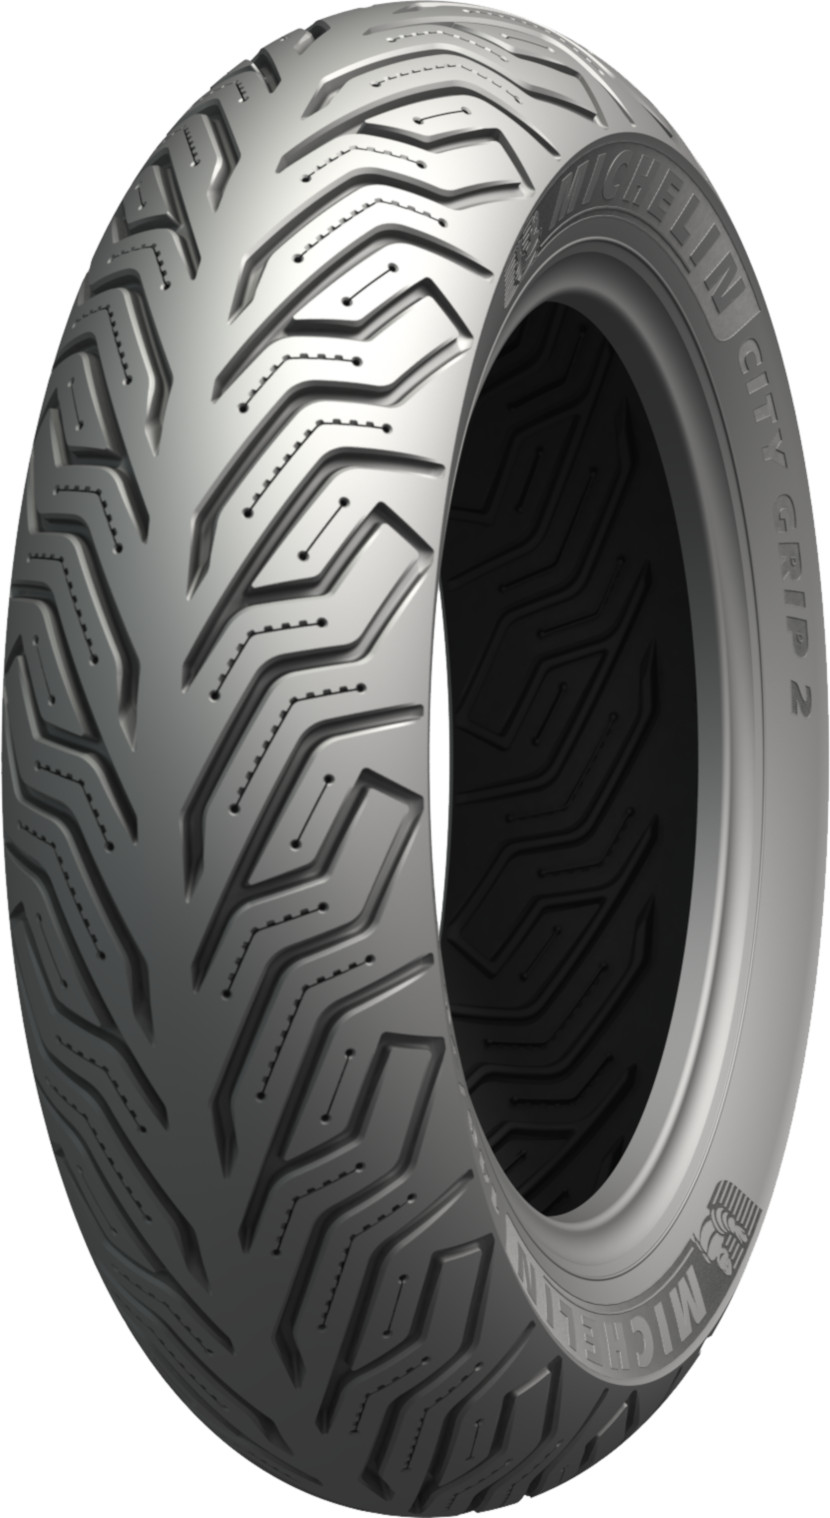 scooter 140/70-16 65S City Grip 2 (R) TL Michelin